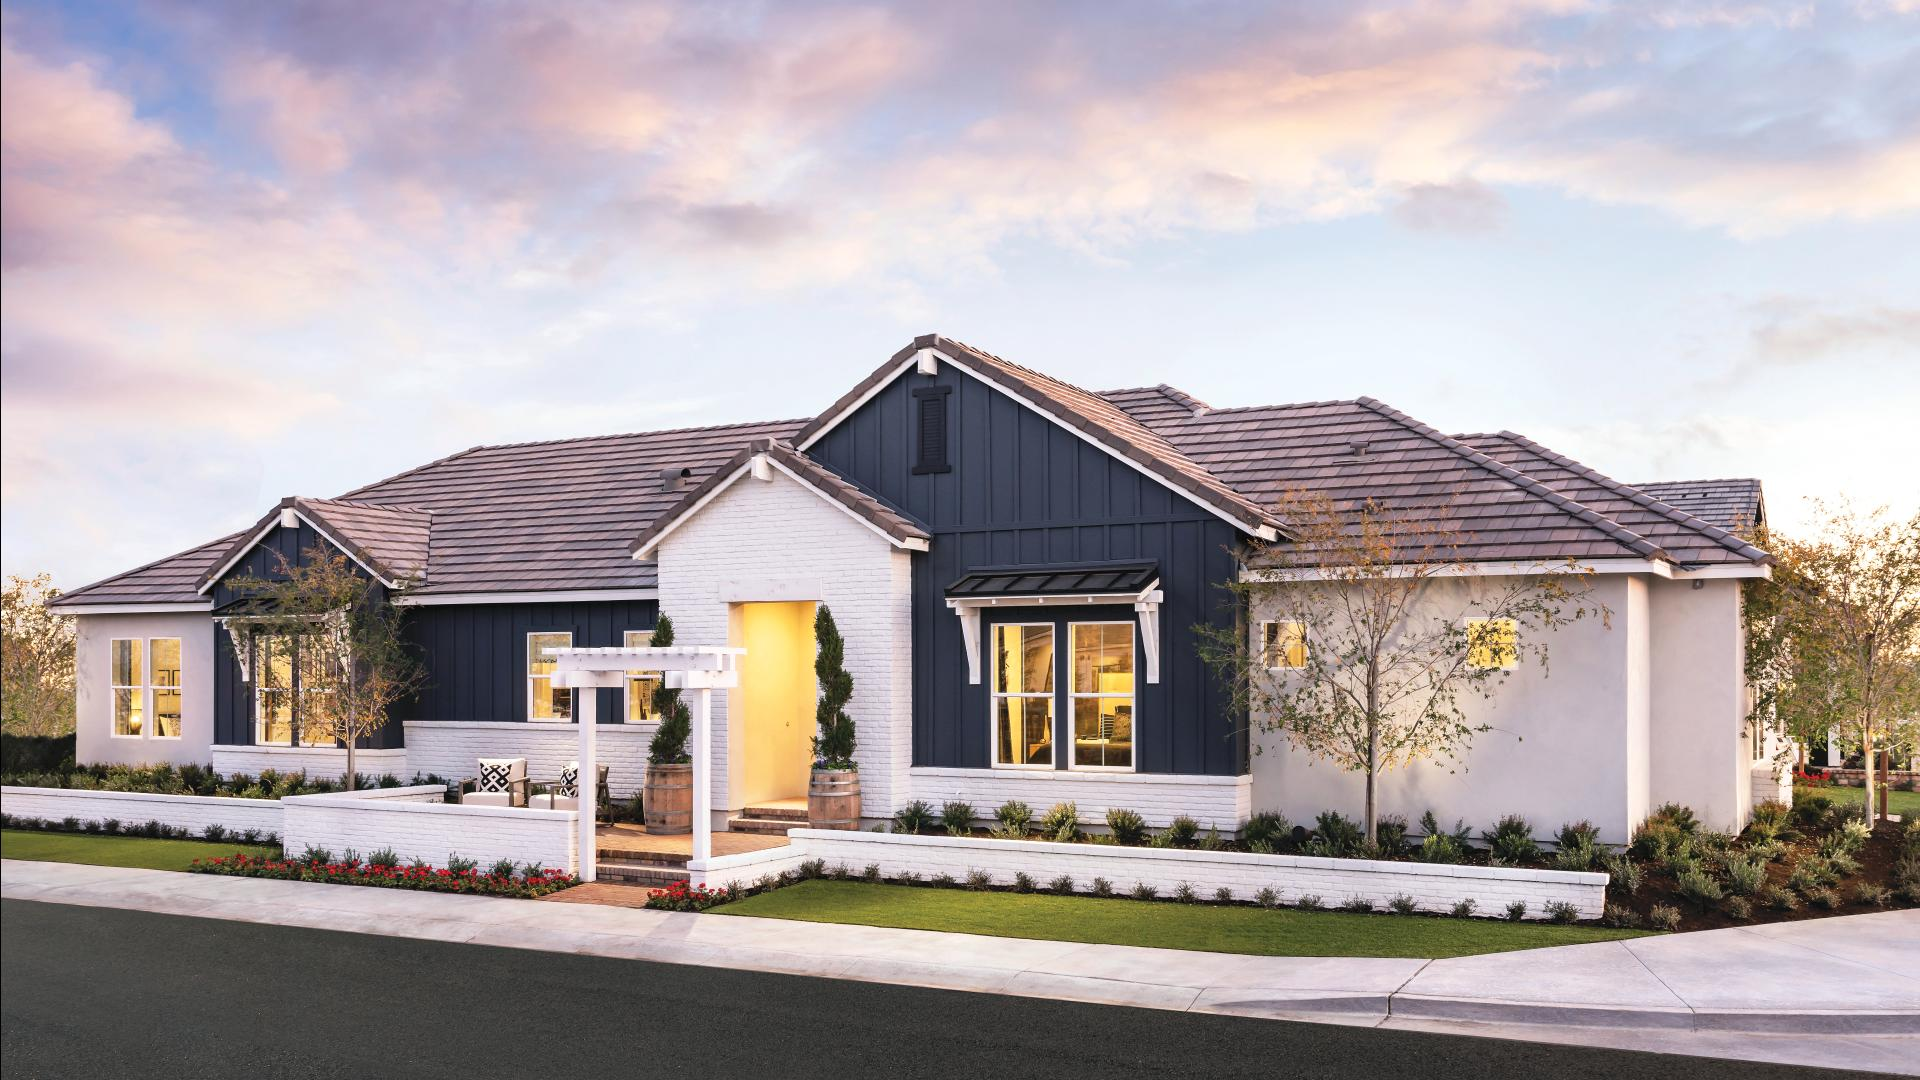 Award-winning home designs with distinct architecture